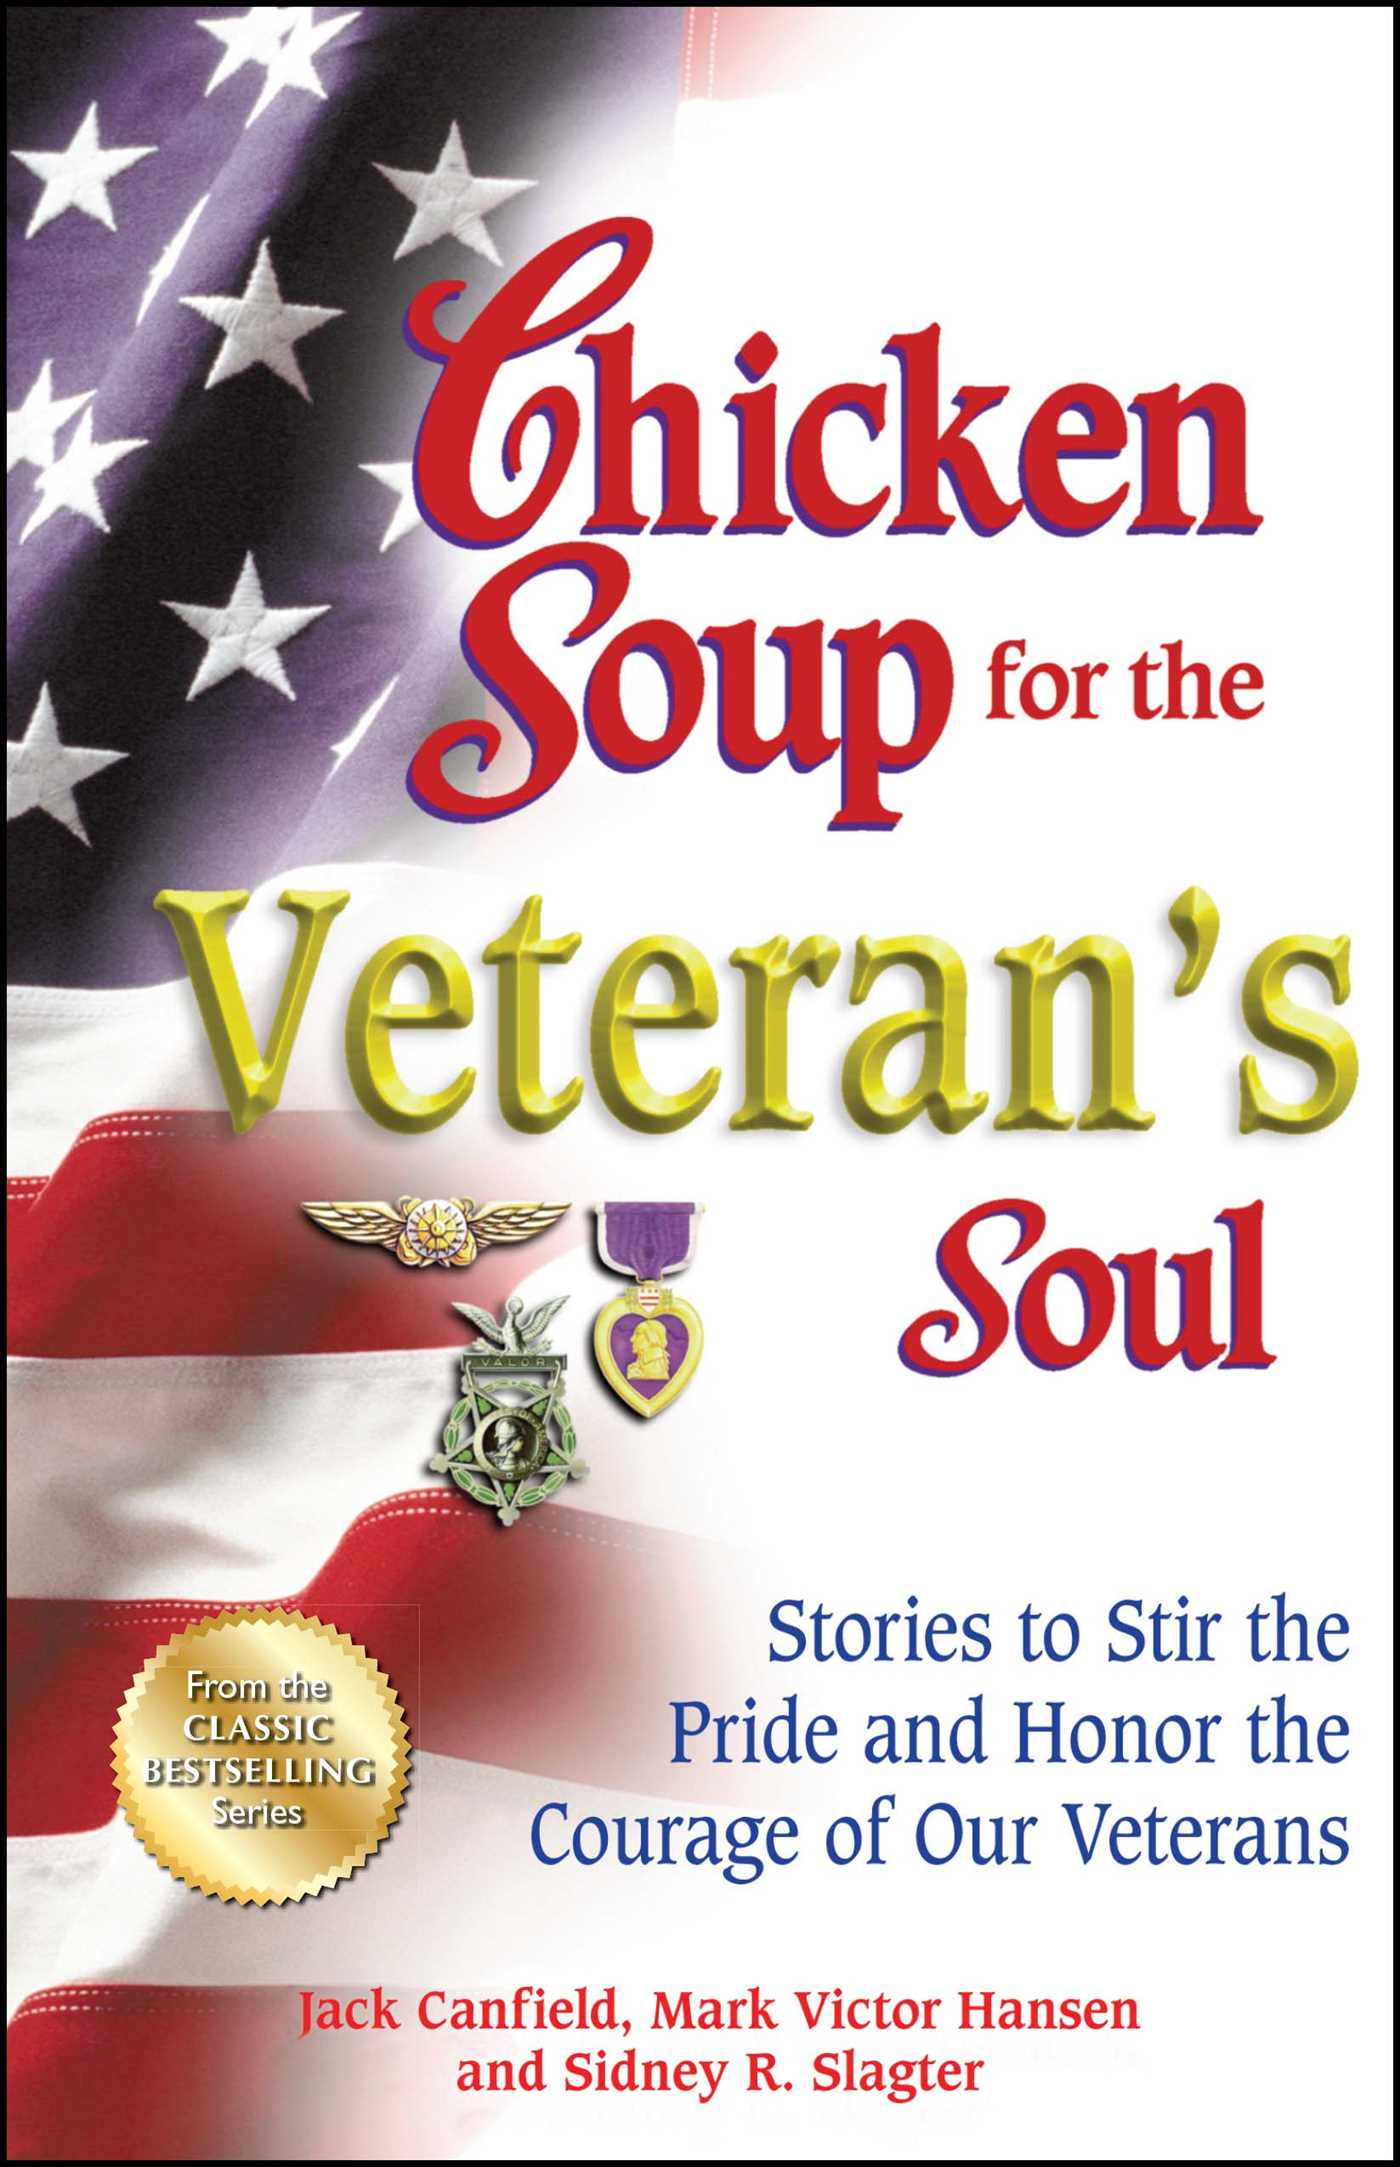 Chicken soup for the veterans soul 9781623611033 hr